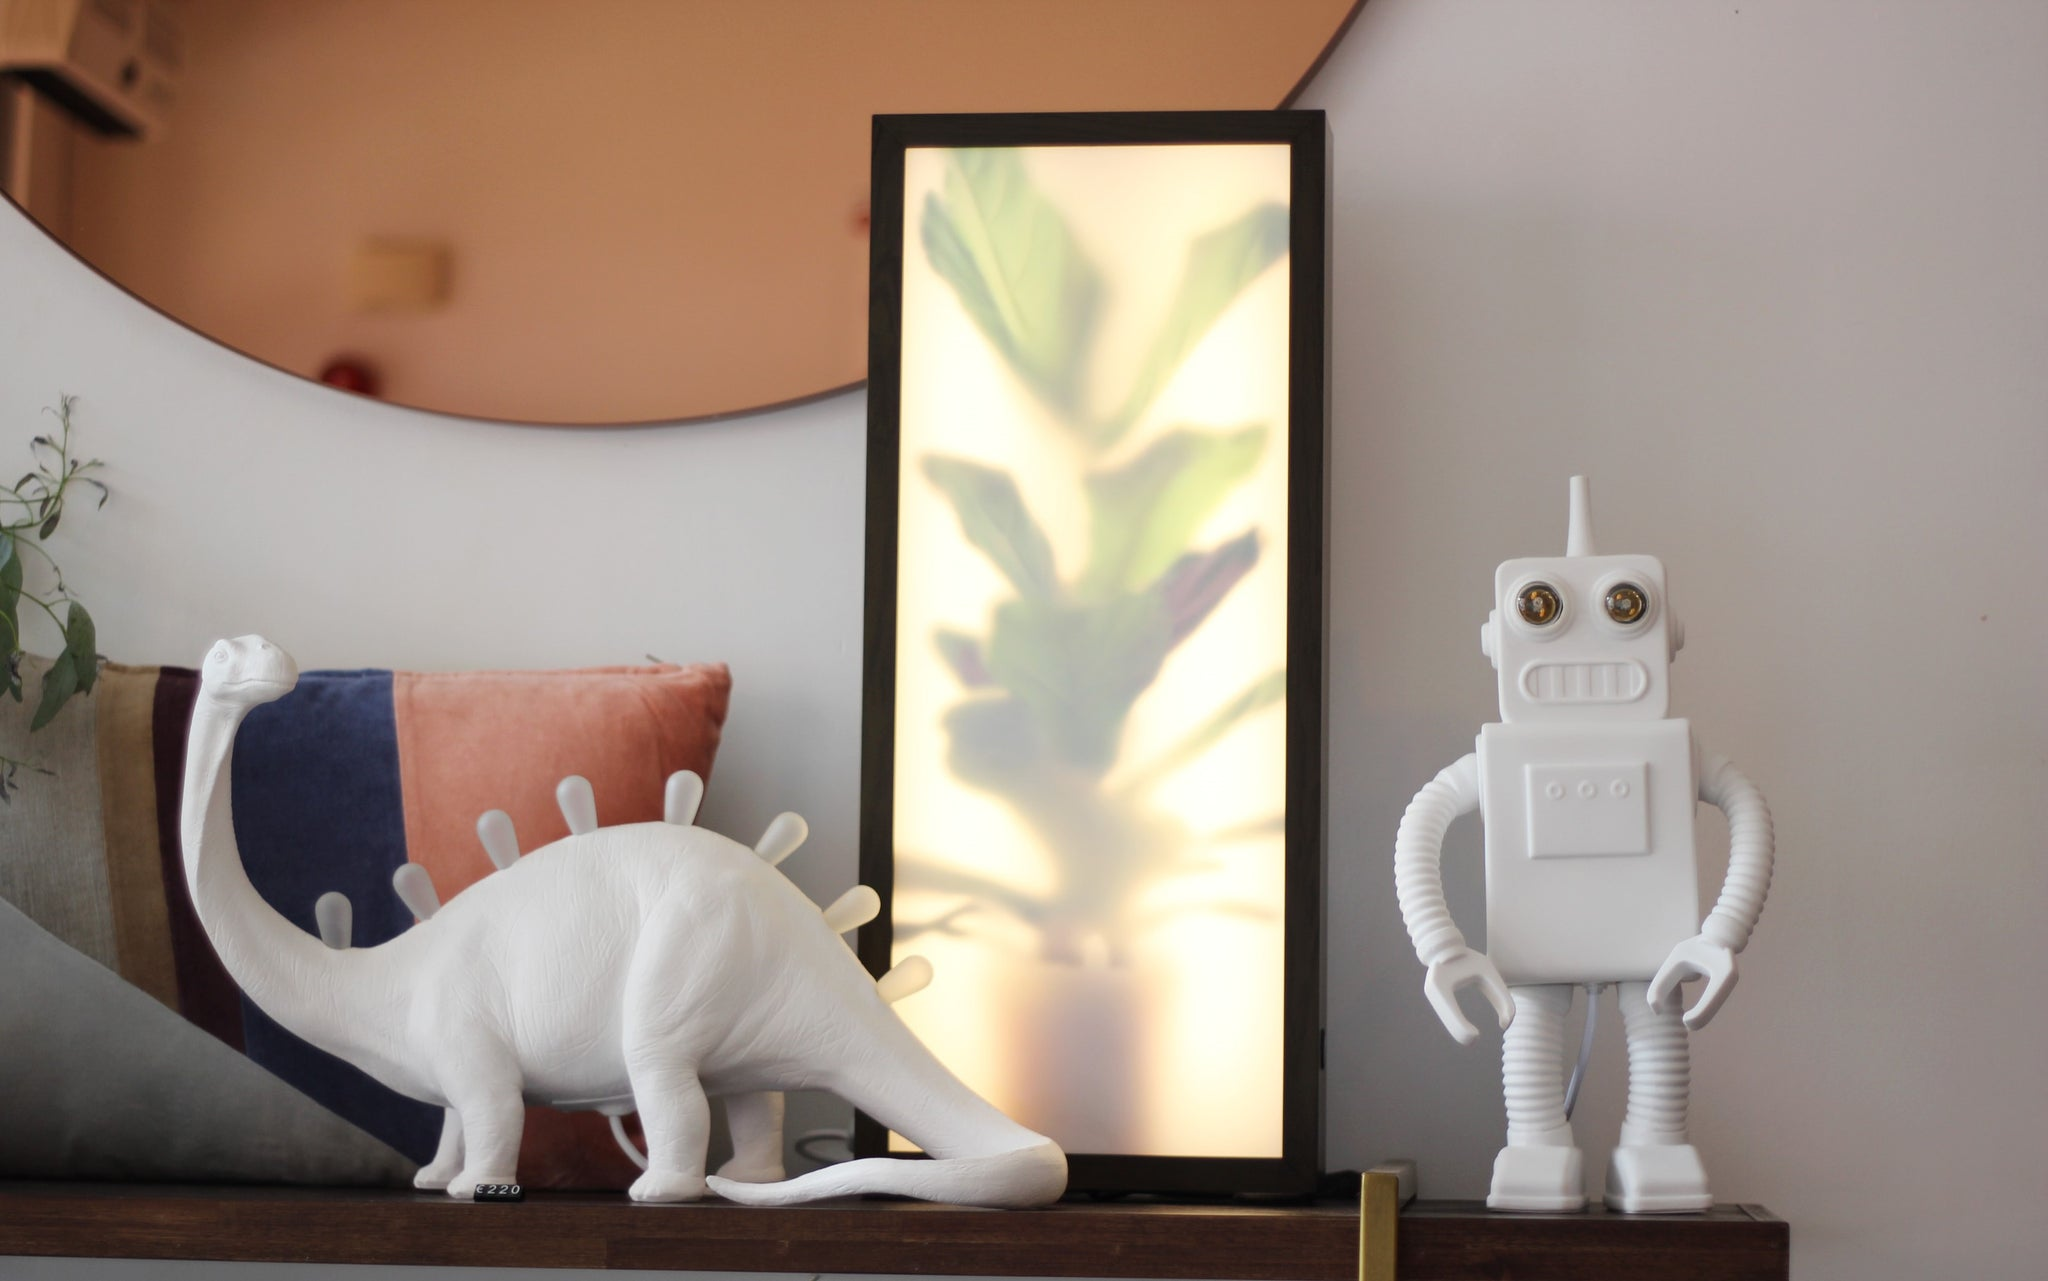 Robot Lamp by Seletti